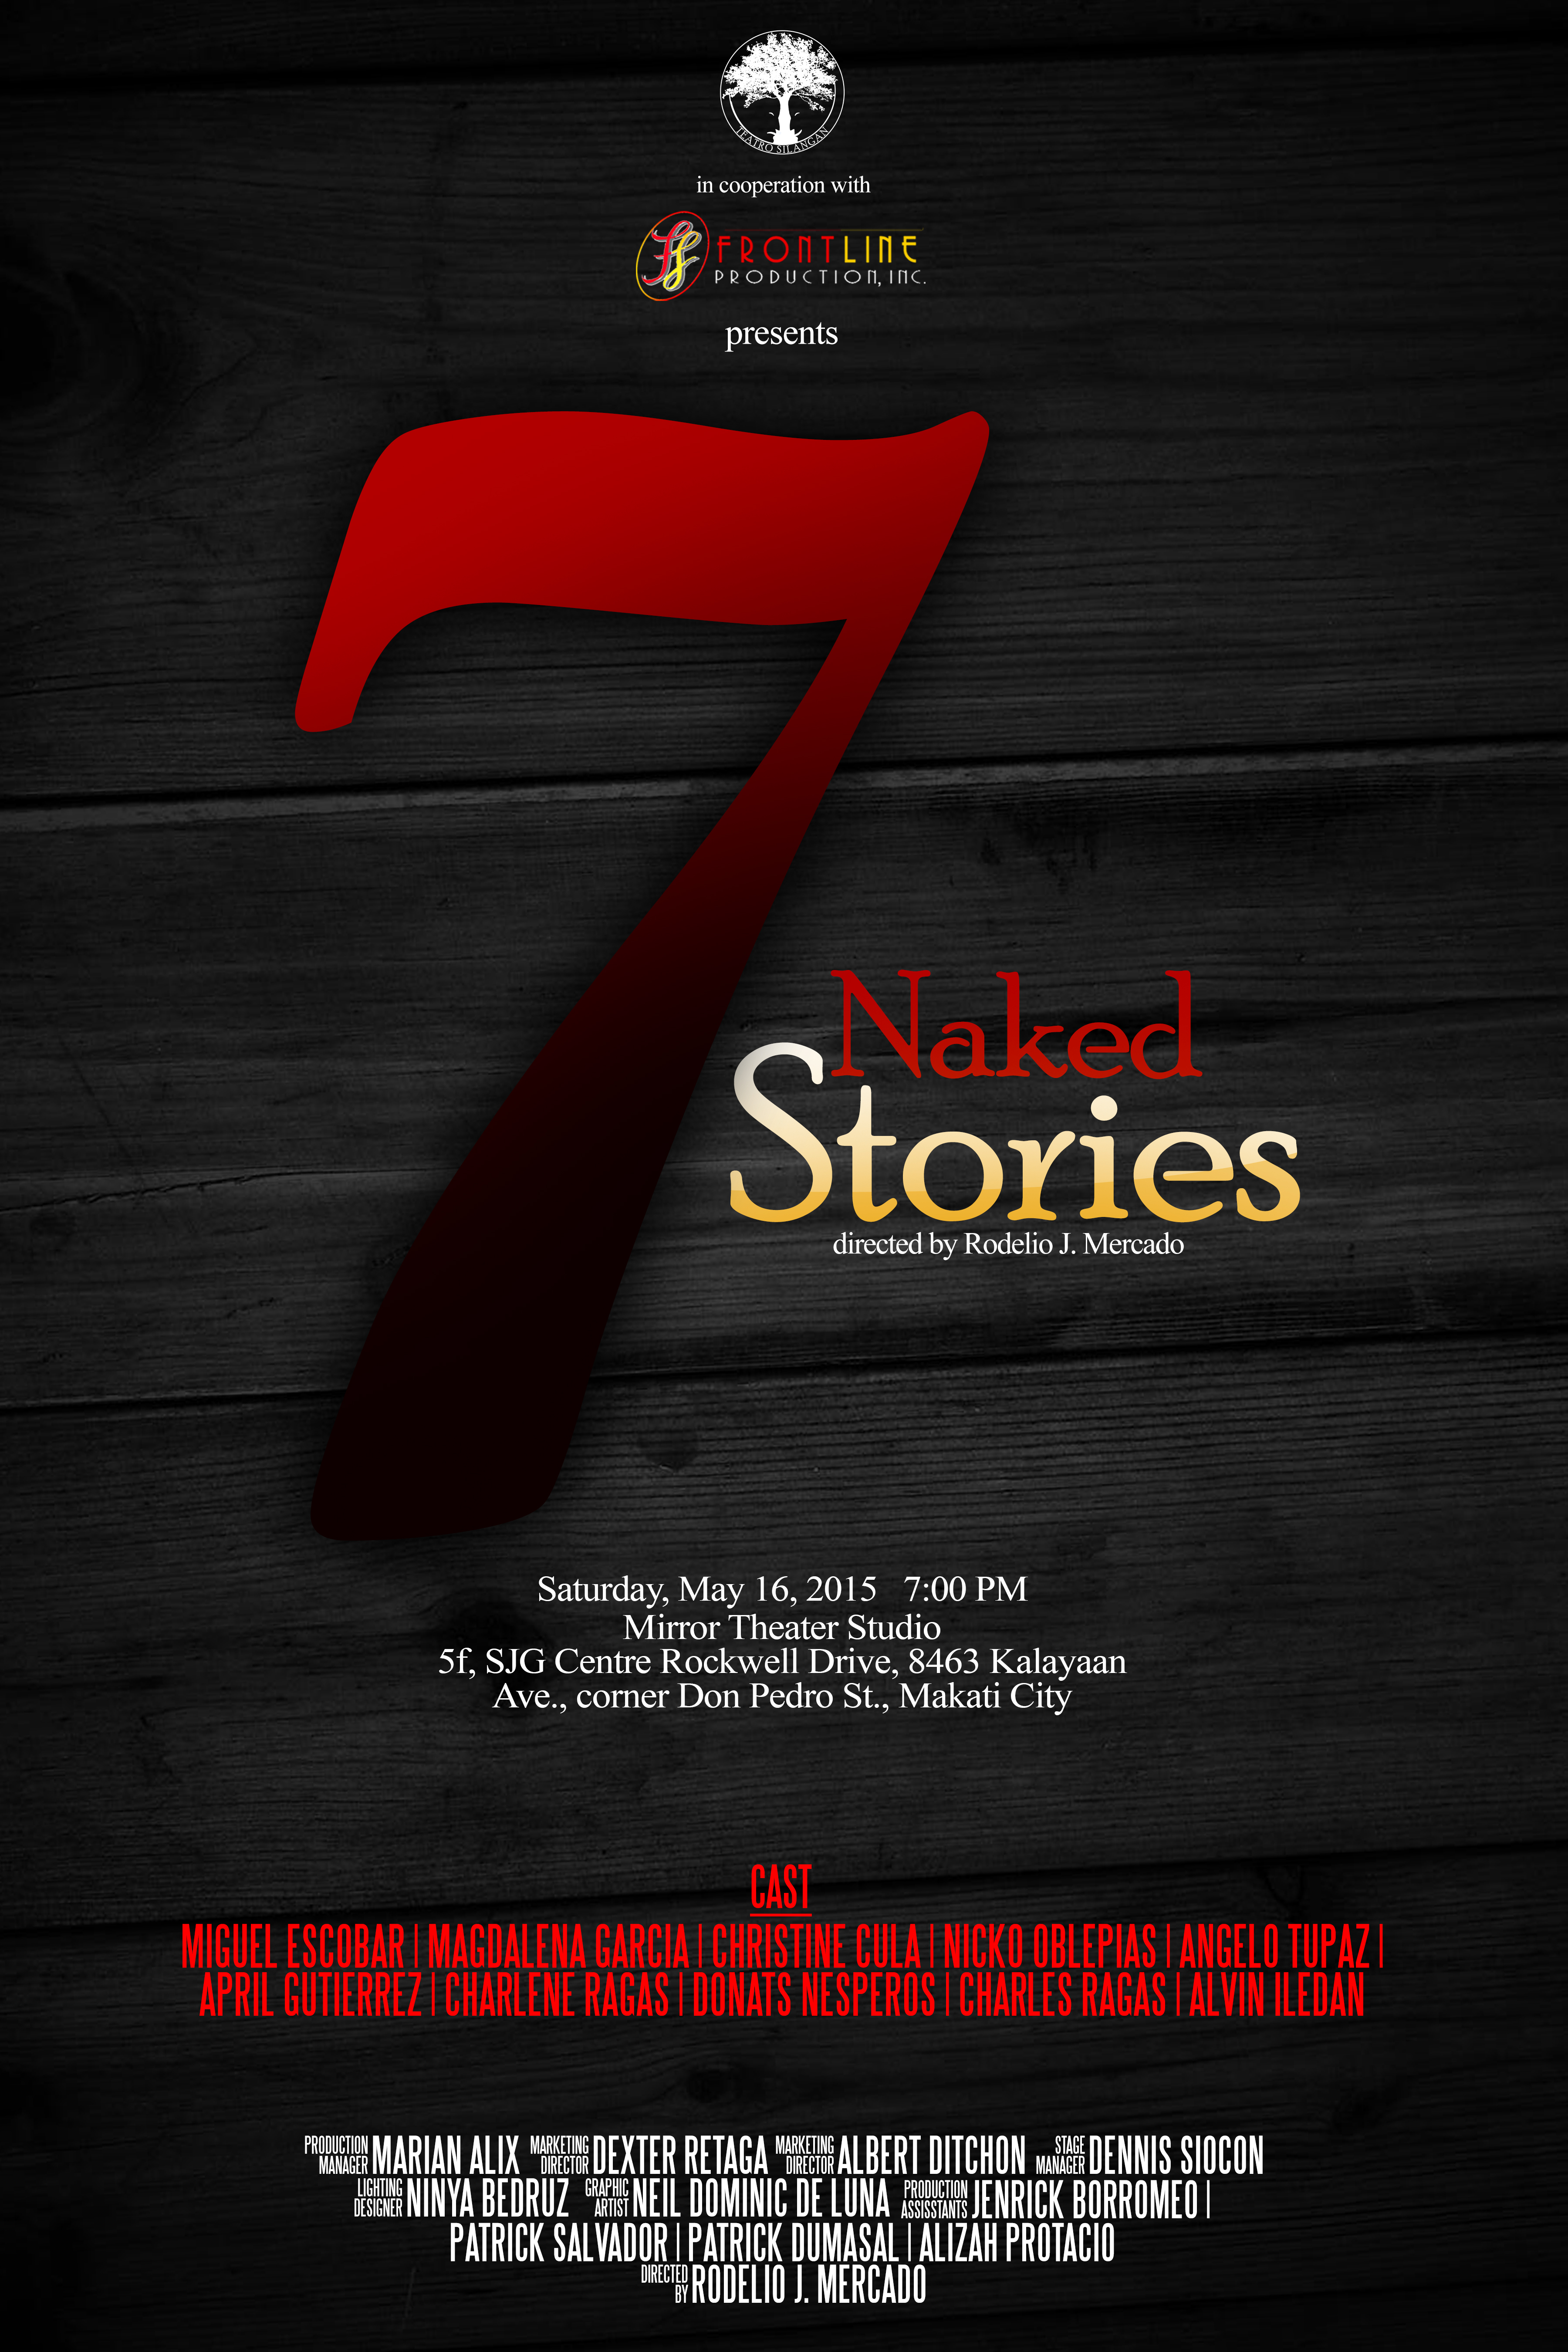 7 Naked Stories